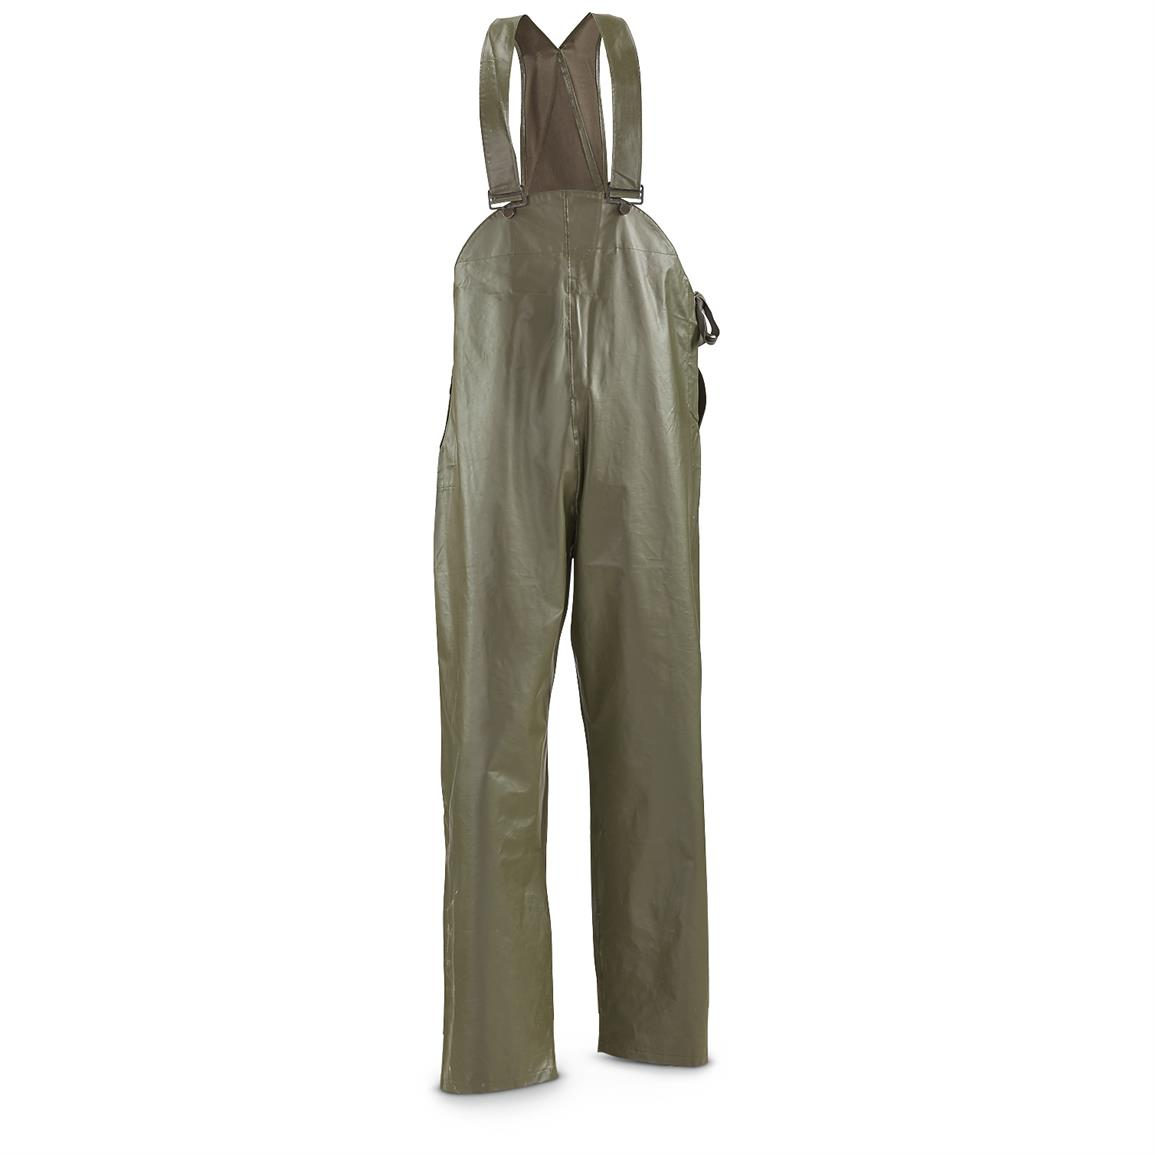 Bib pants have adjustable suspenders with elastic panel